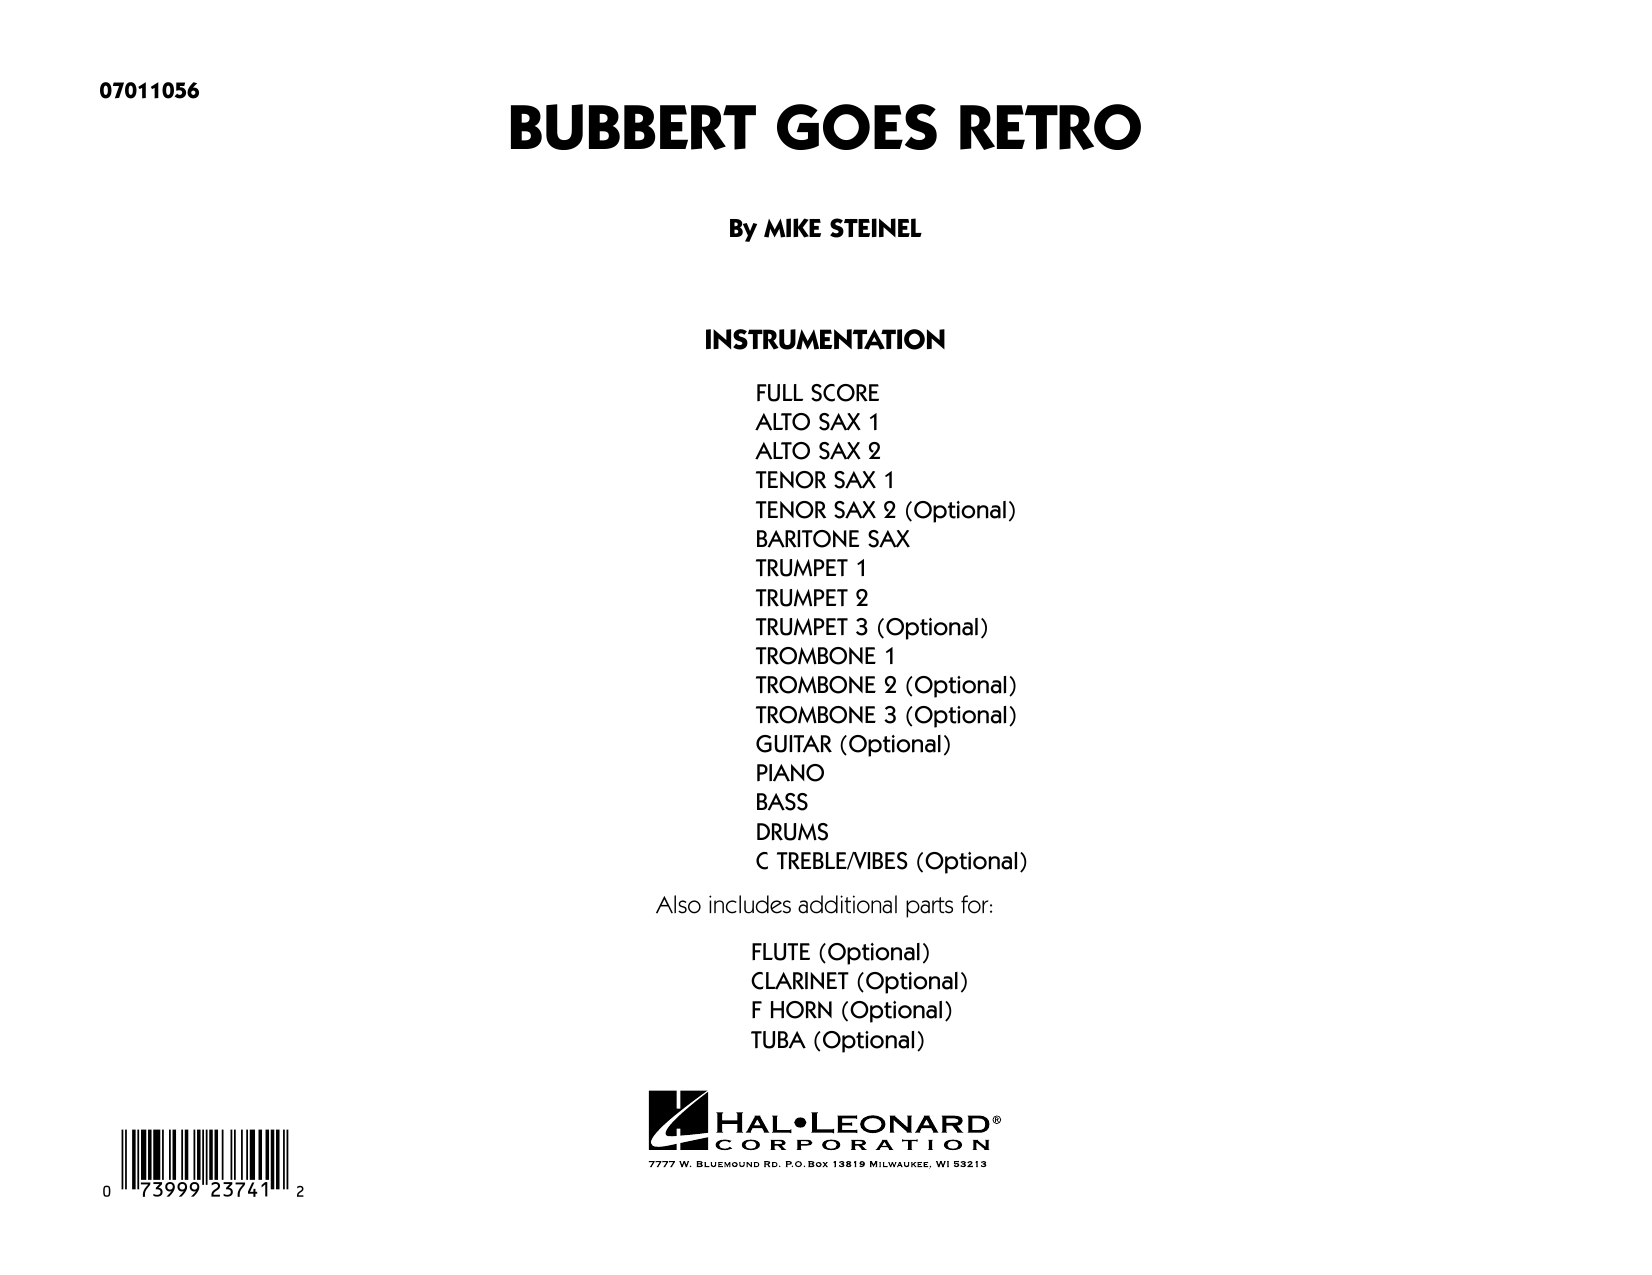 Bubbert Goes Retro (COMPLETE) sheet music for jazz band by Mike Steinel